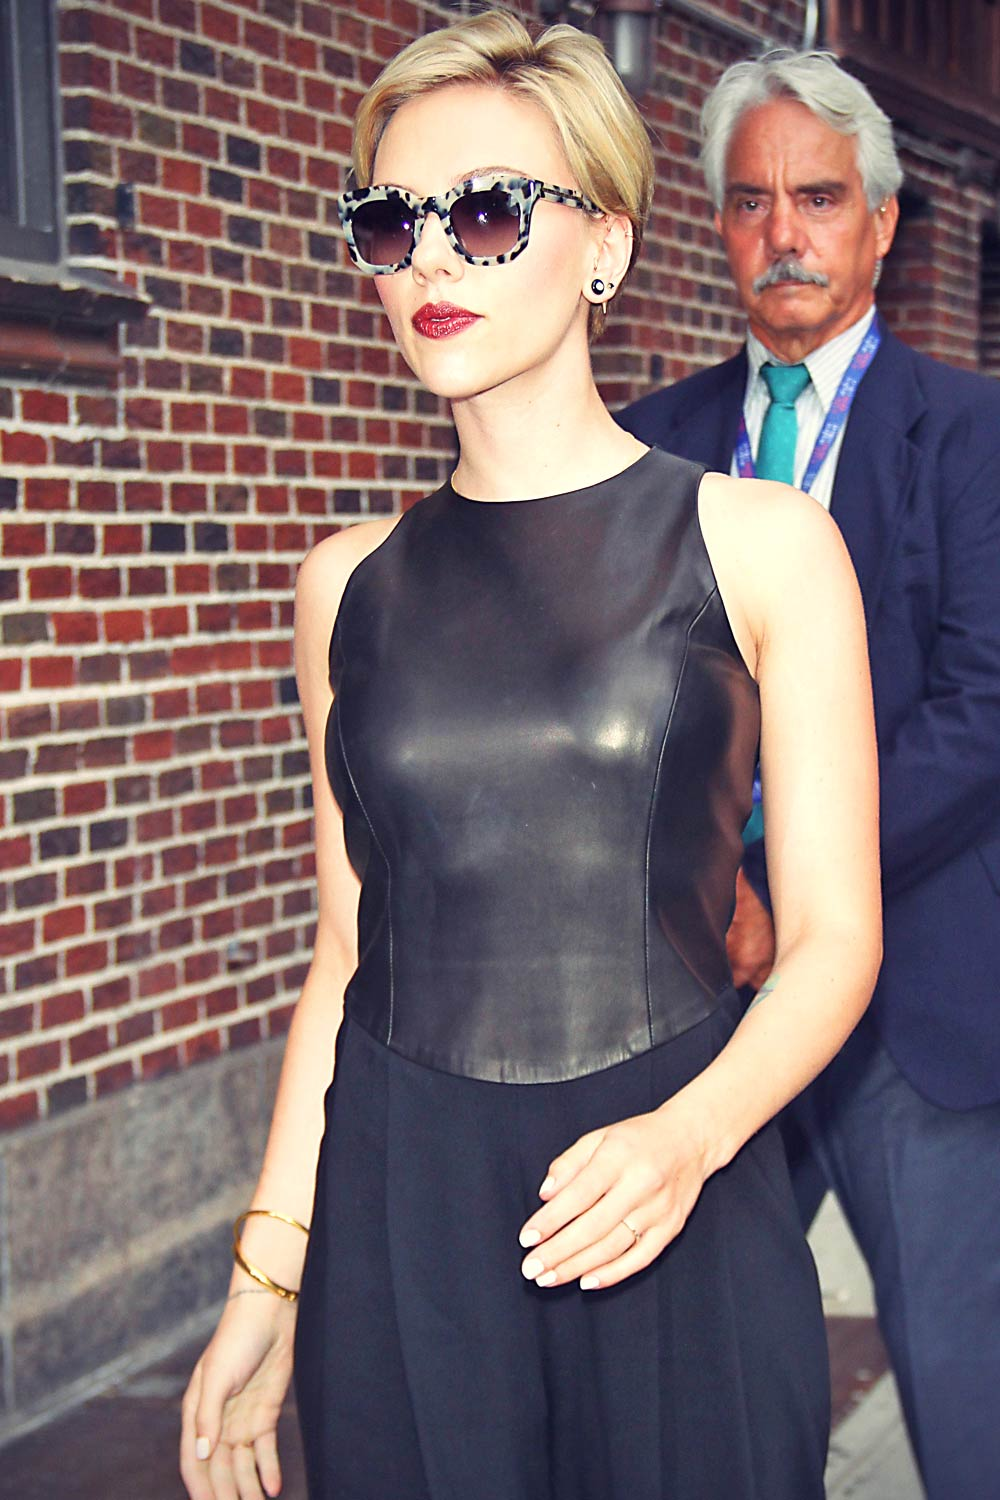 Scarlett Johansson At The Late Show With Stephen Colbert